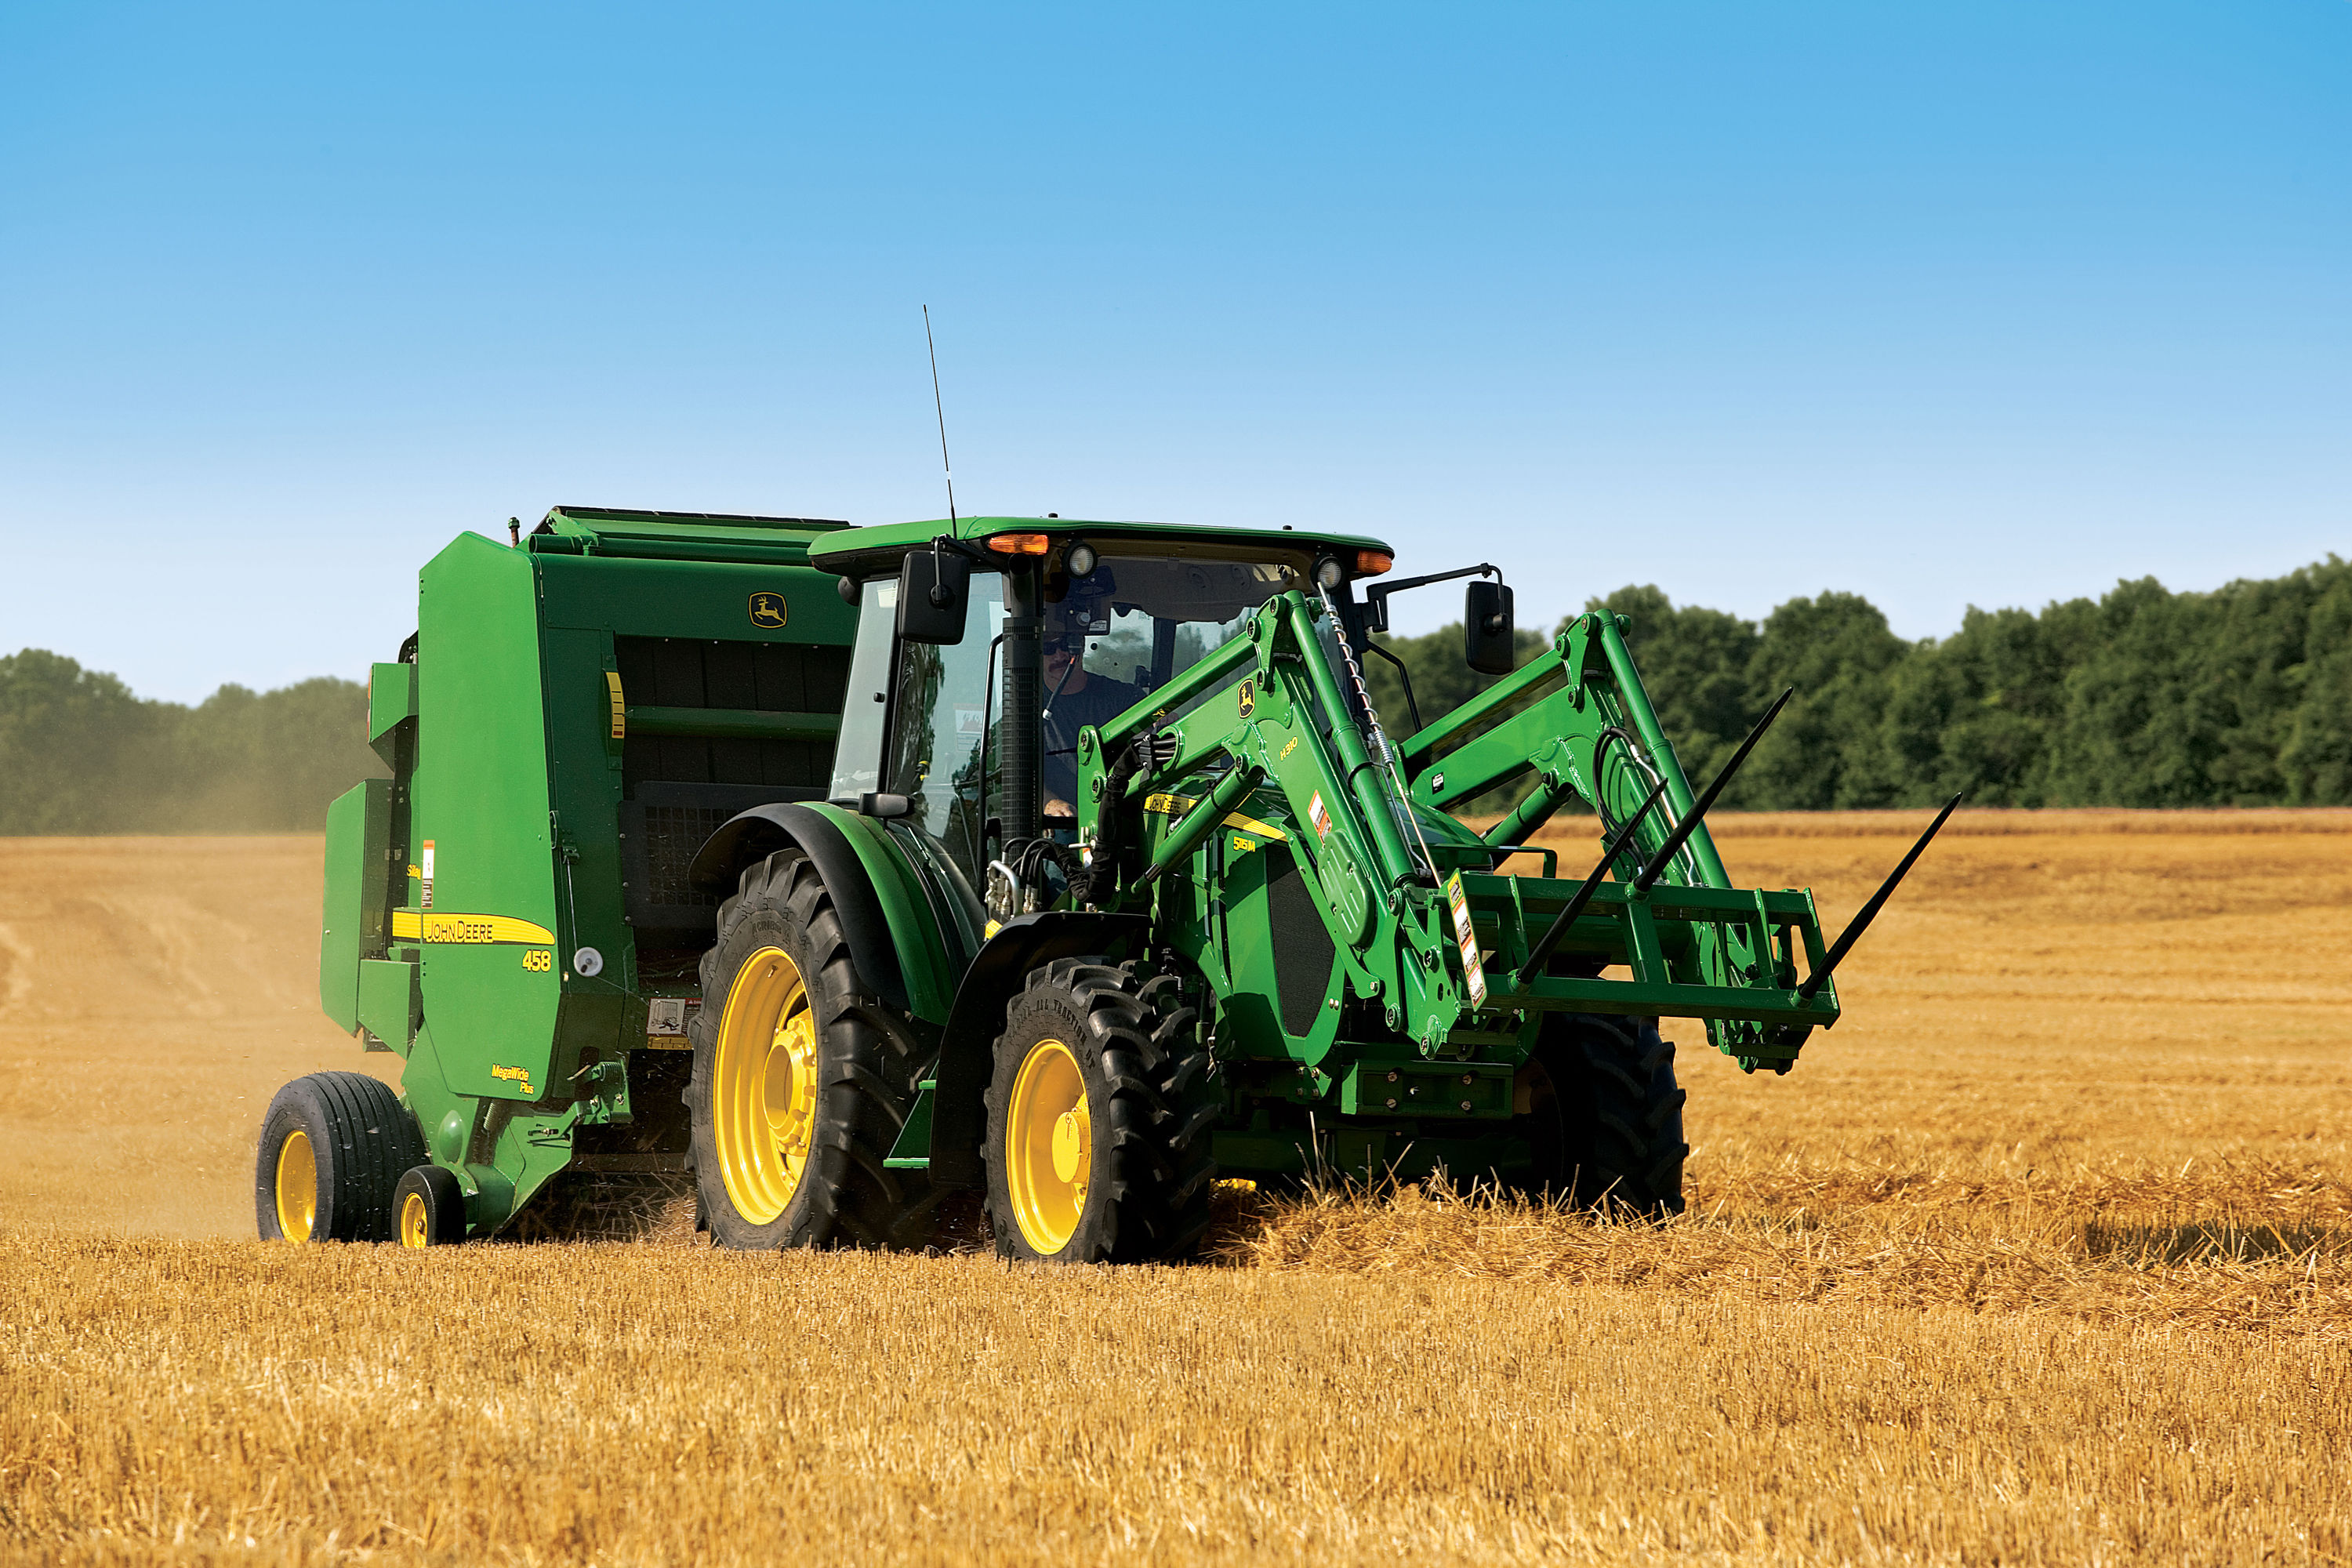 John Deere Introduces New 5M and 5E Limited Series Utility ...